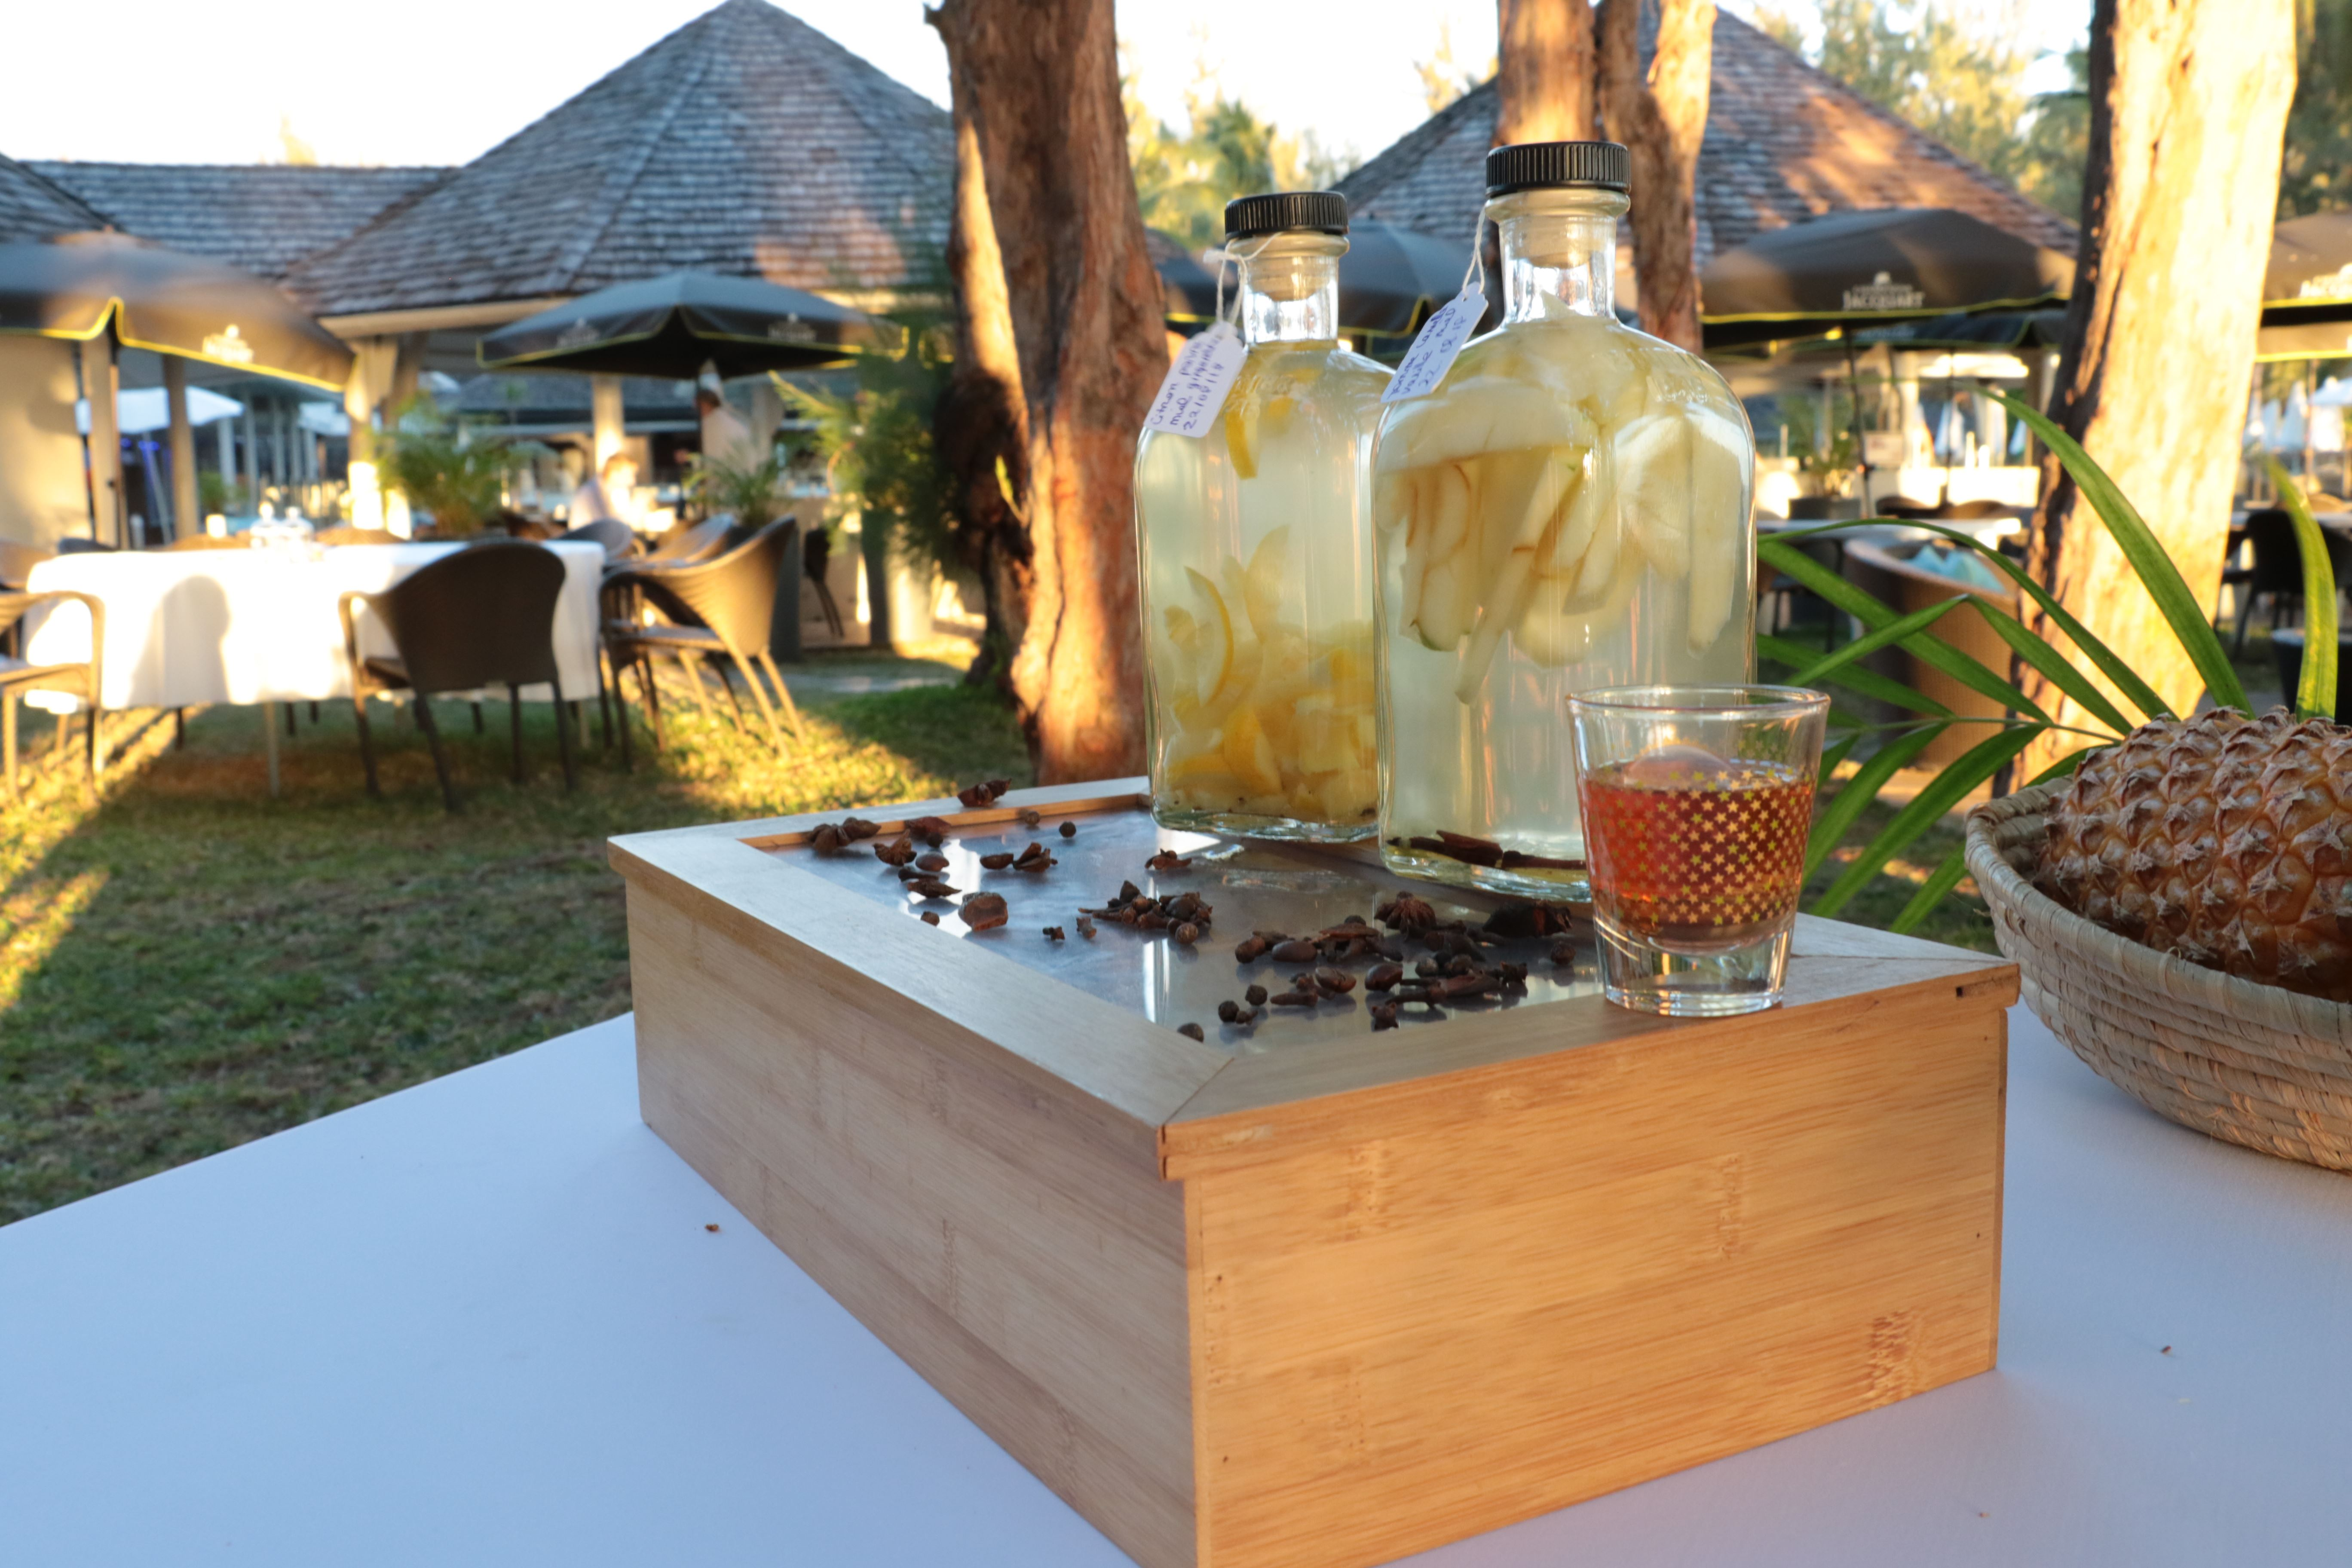 Zarlor Luxury Relaxation, Tranquillity and Bliss - Pack 2 : Evening by the lagoon